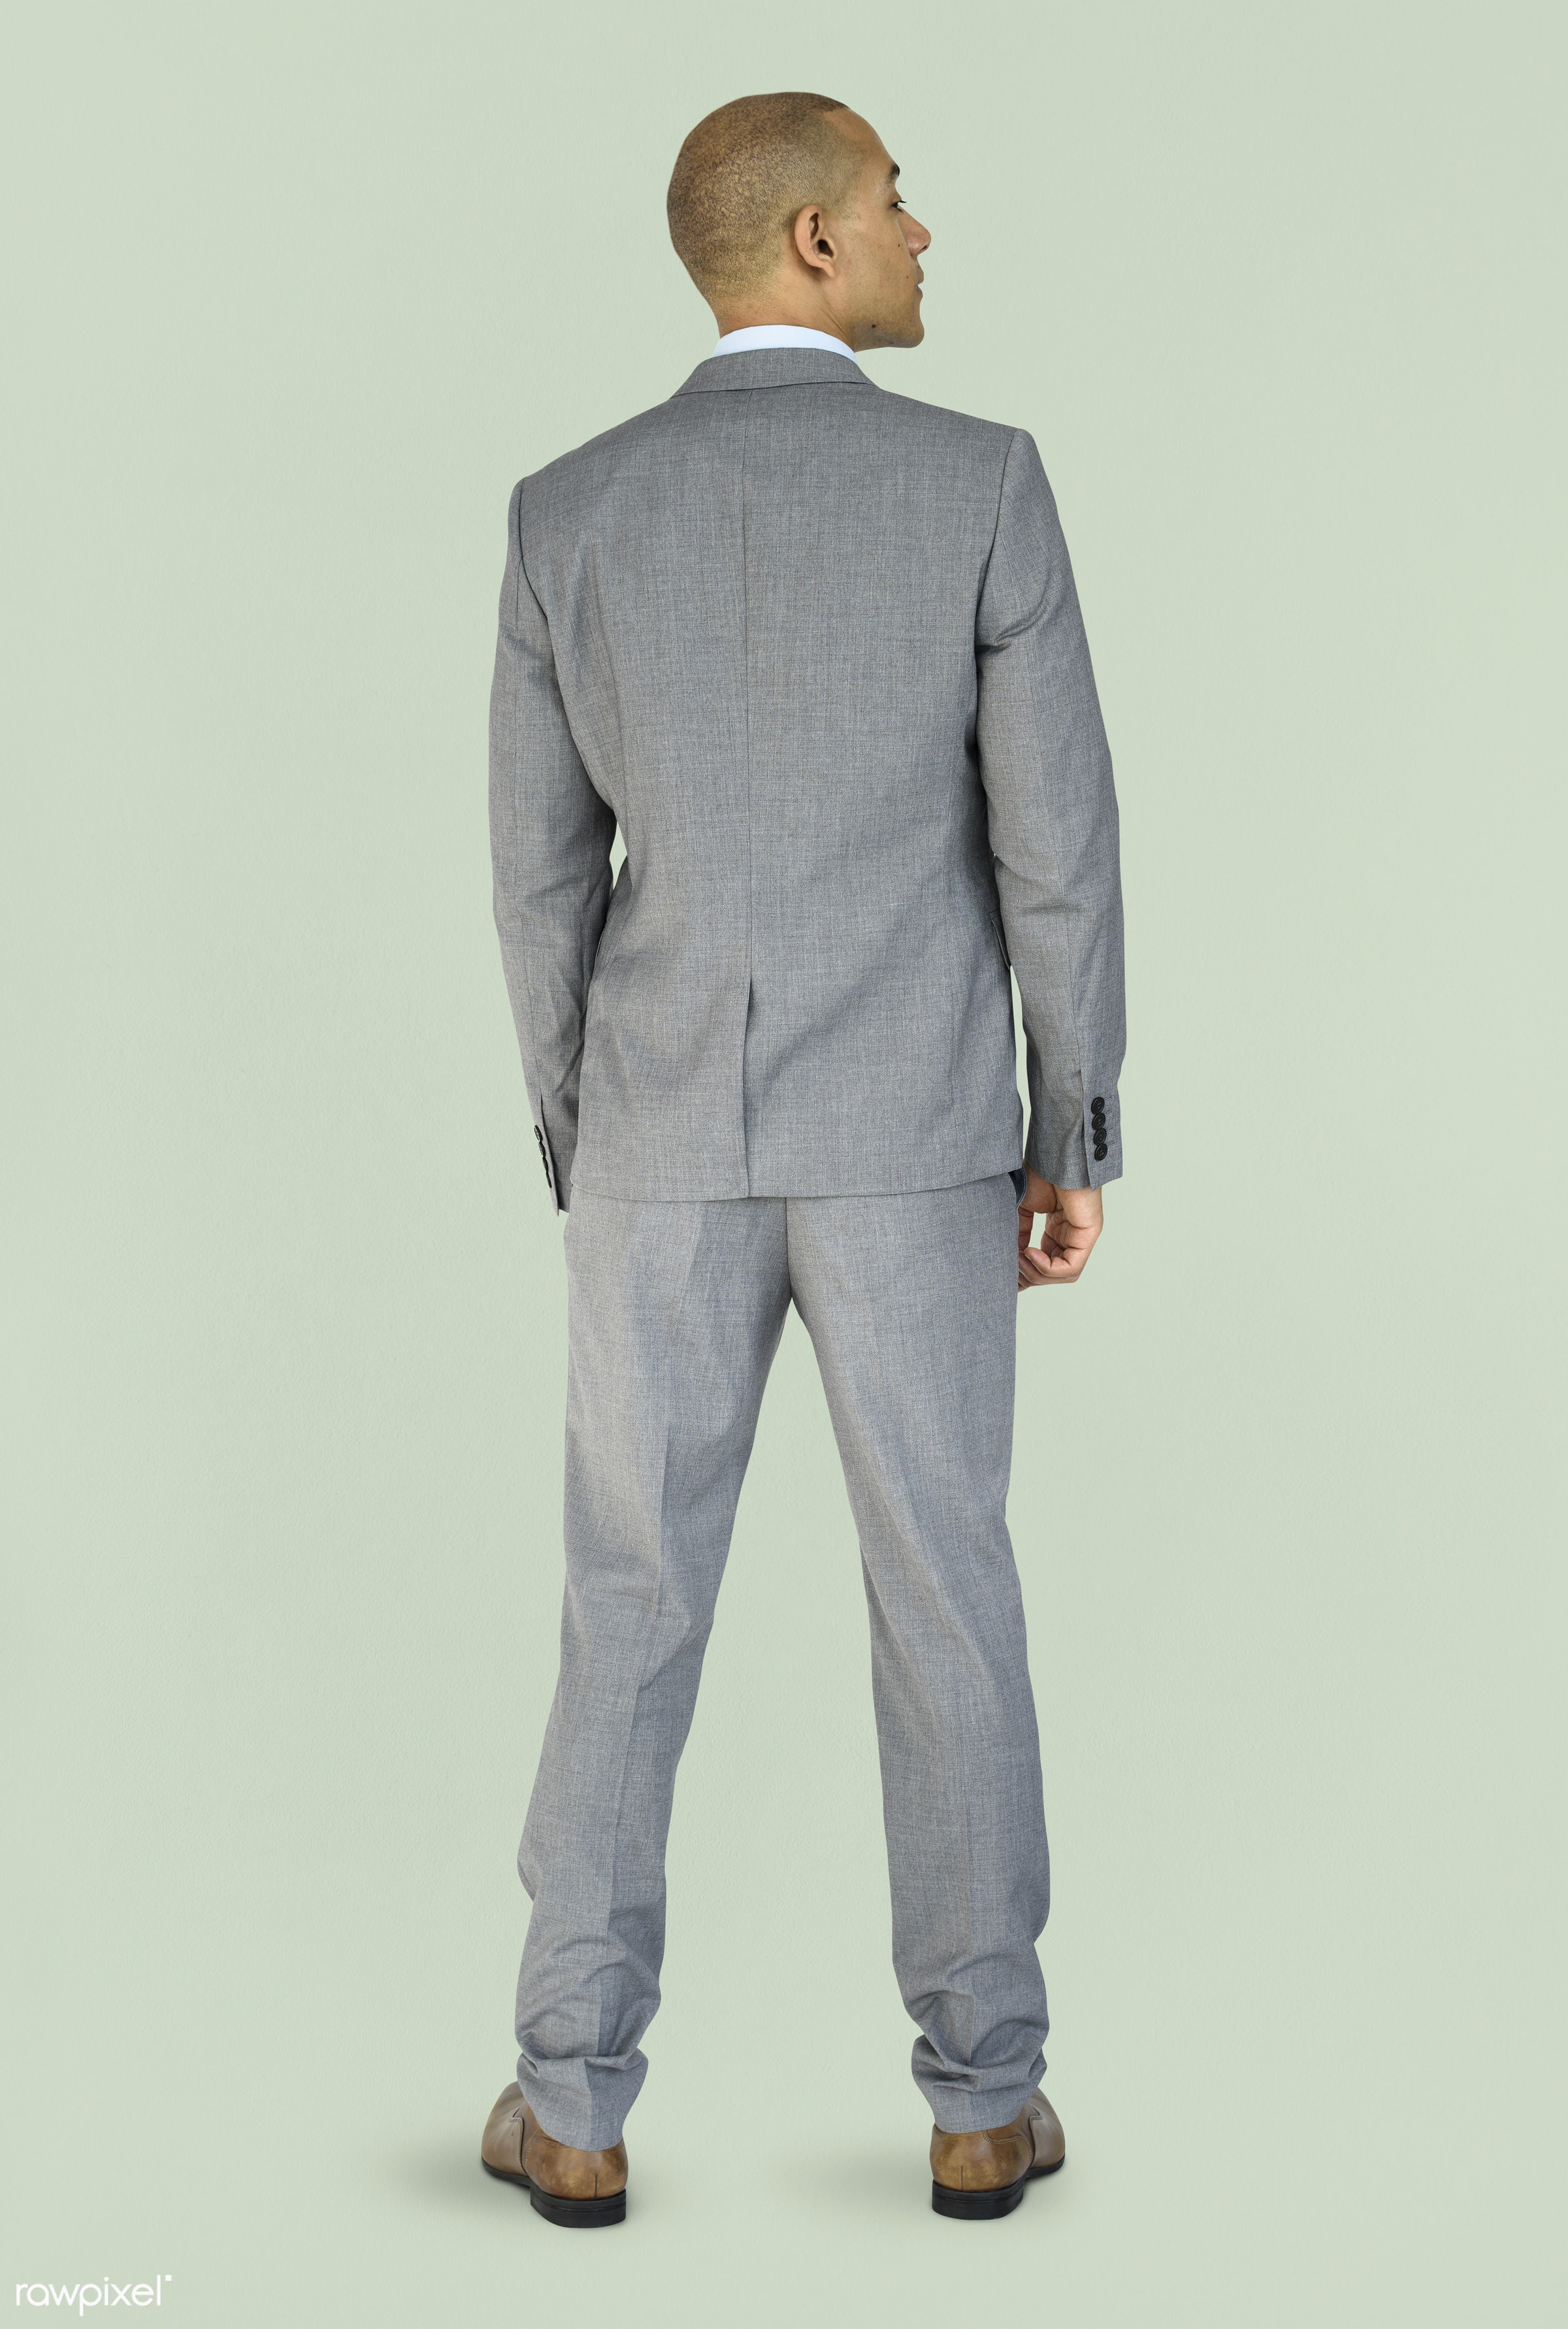 studio, person, people, business, businessman, man, abstract, rear view, isolated, green, male, adult, portrait, formal,...